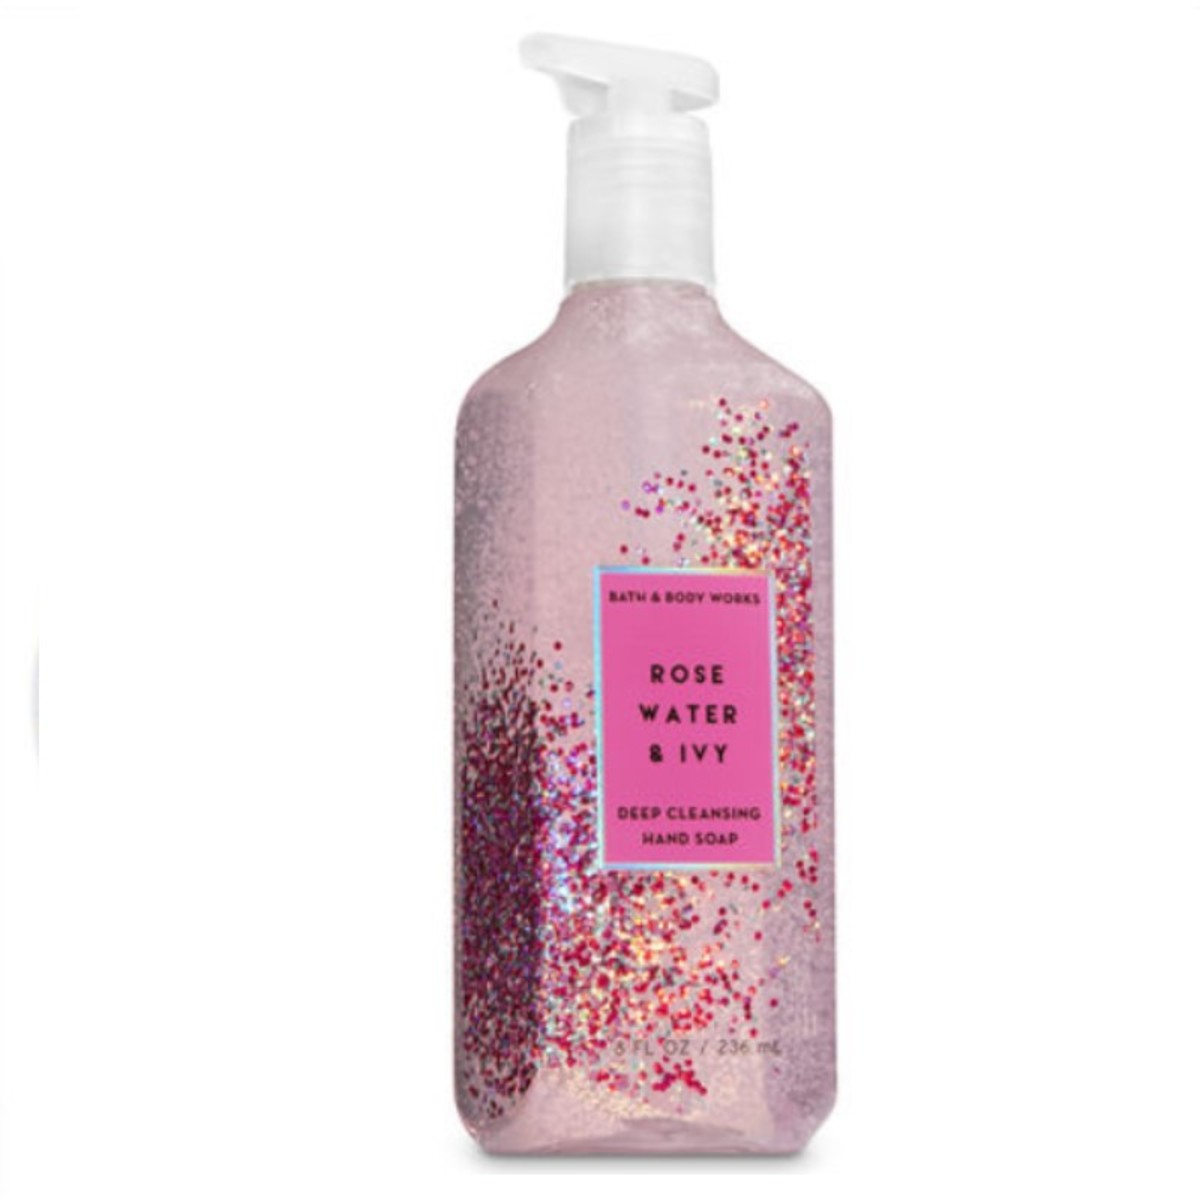 Rose Water &IVY Deep Cleansing Hand Soap(Parallel Imports Product)